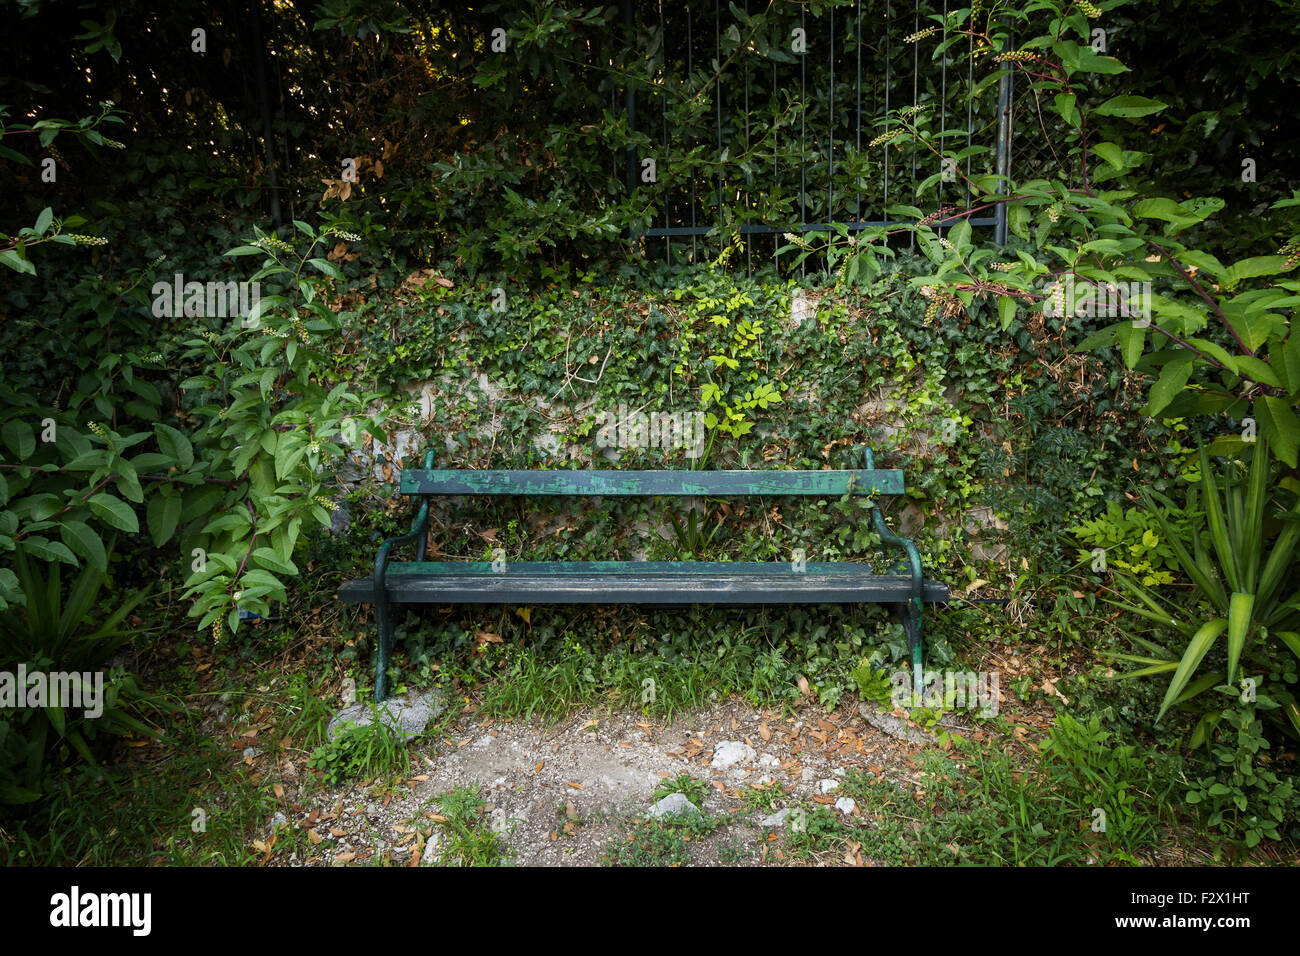 Unoccupied old green bench surrounded by plants and foliage. Concept photo of solitude and anxiety. - Stock Image